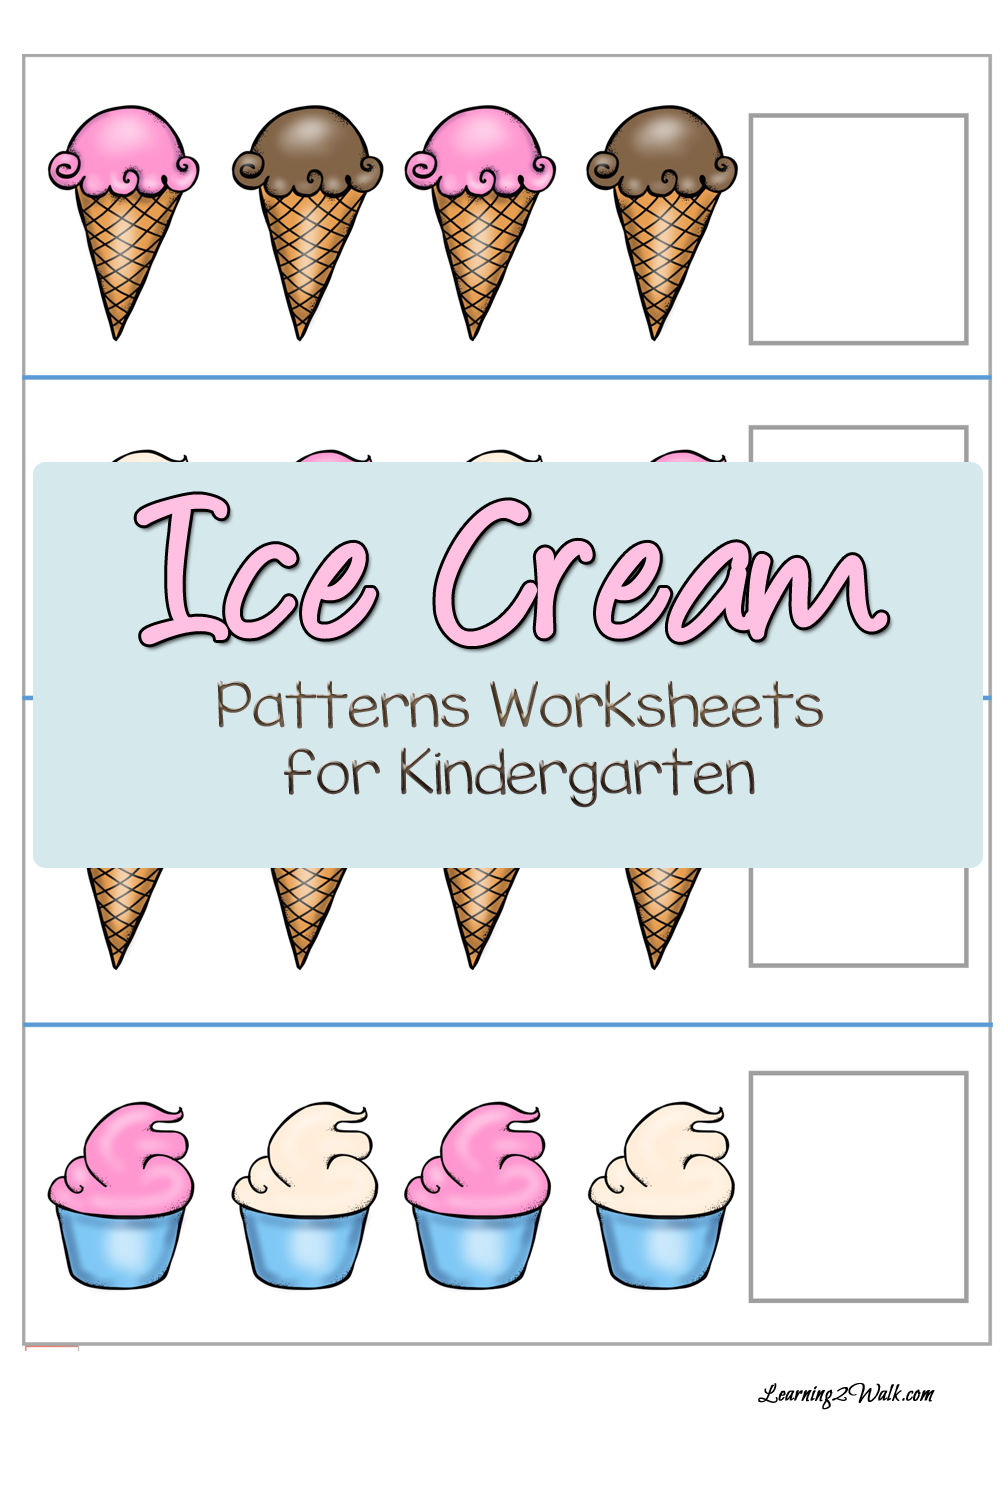 FREE Ice Cream Patterns Worksheets for Kindergarten – Pattern Worksheets Kindergarten